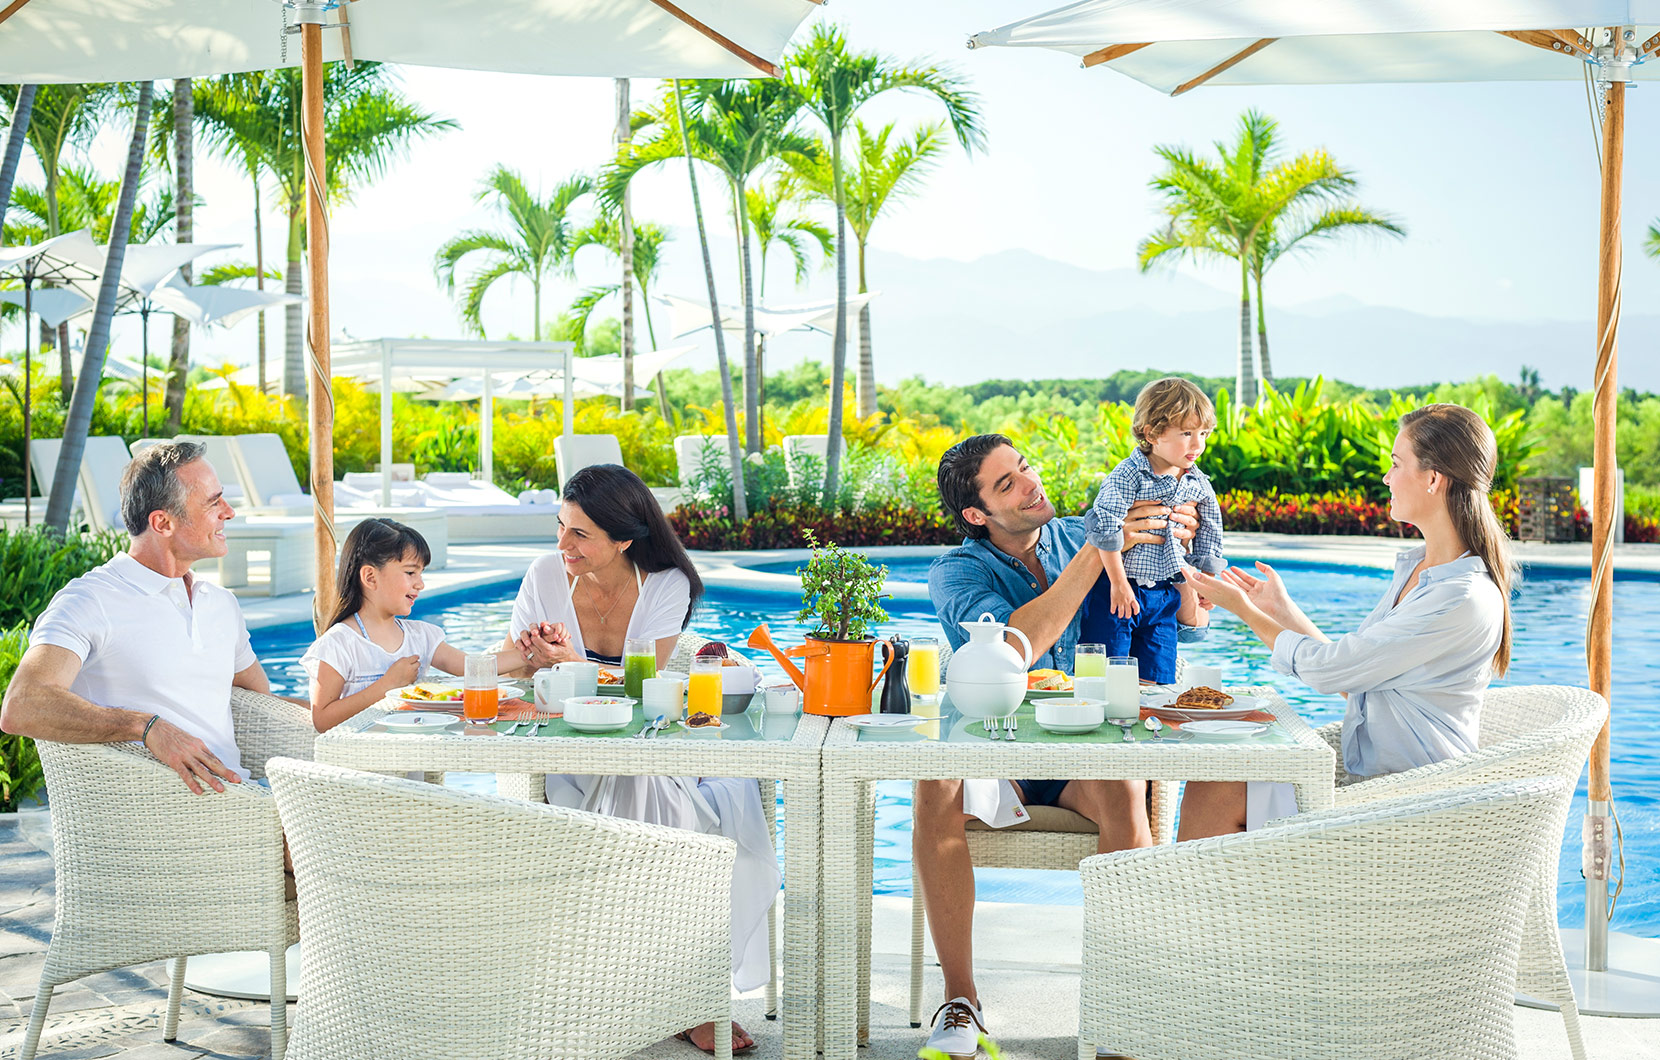 The whole family can spend the week having fun together with The Mas The Merrier Package.